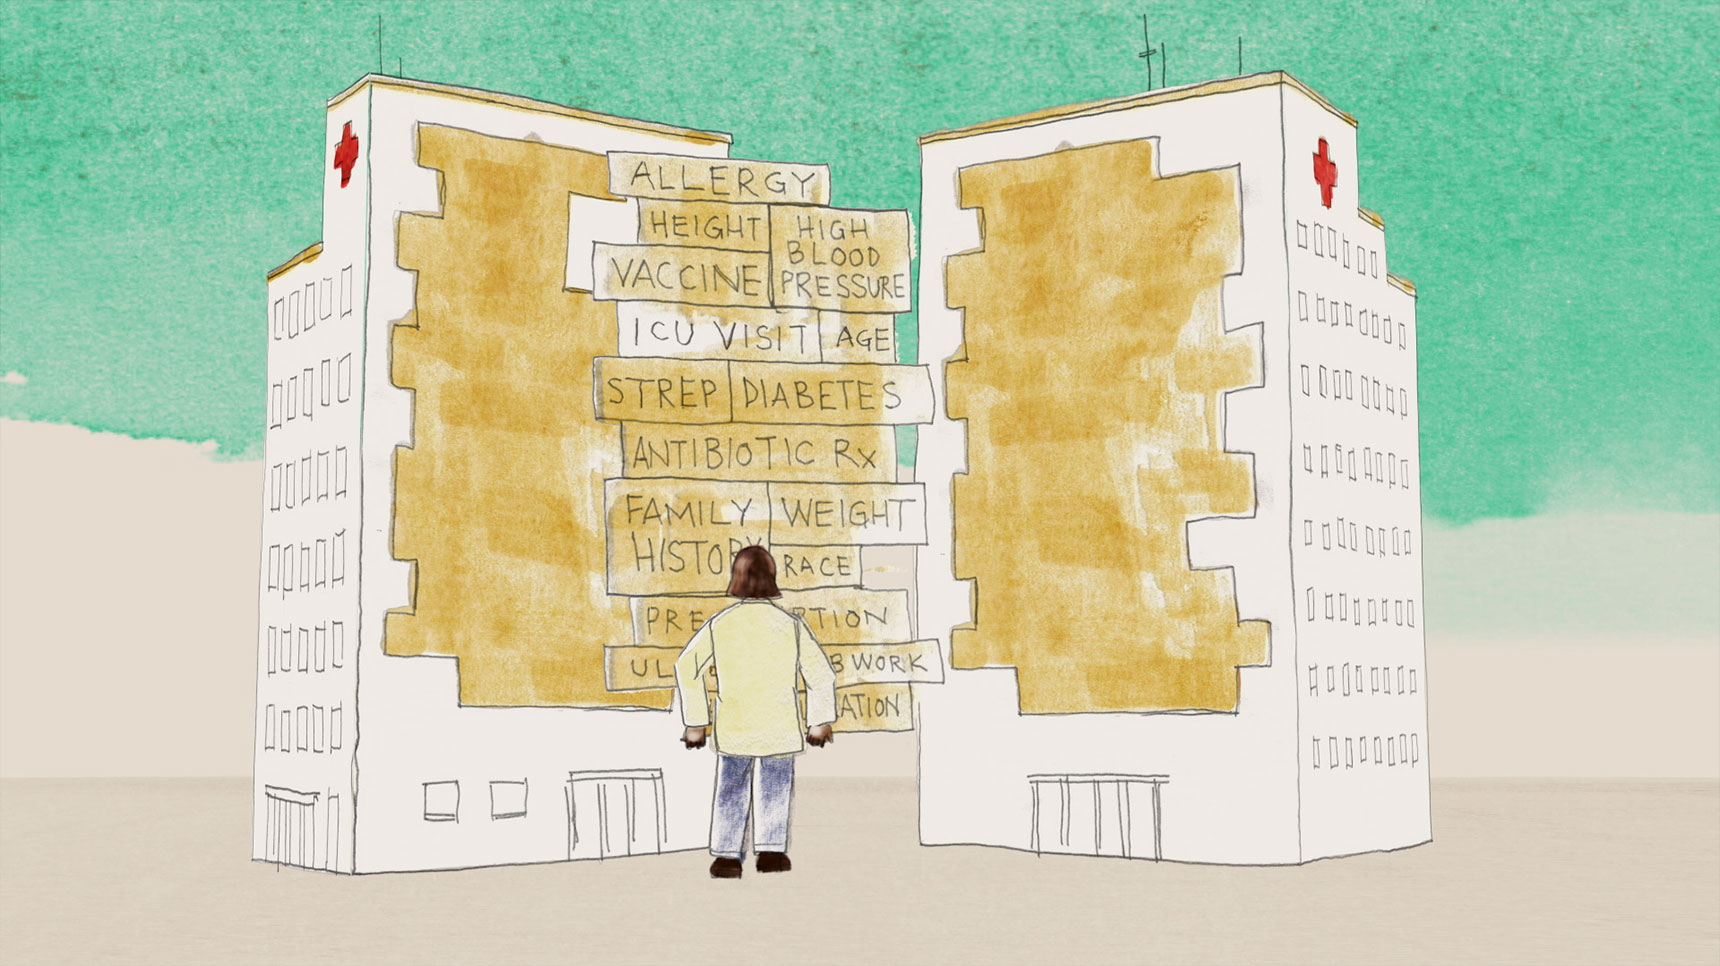 an animated character lifts puzzle pieces from one hospital building to the other